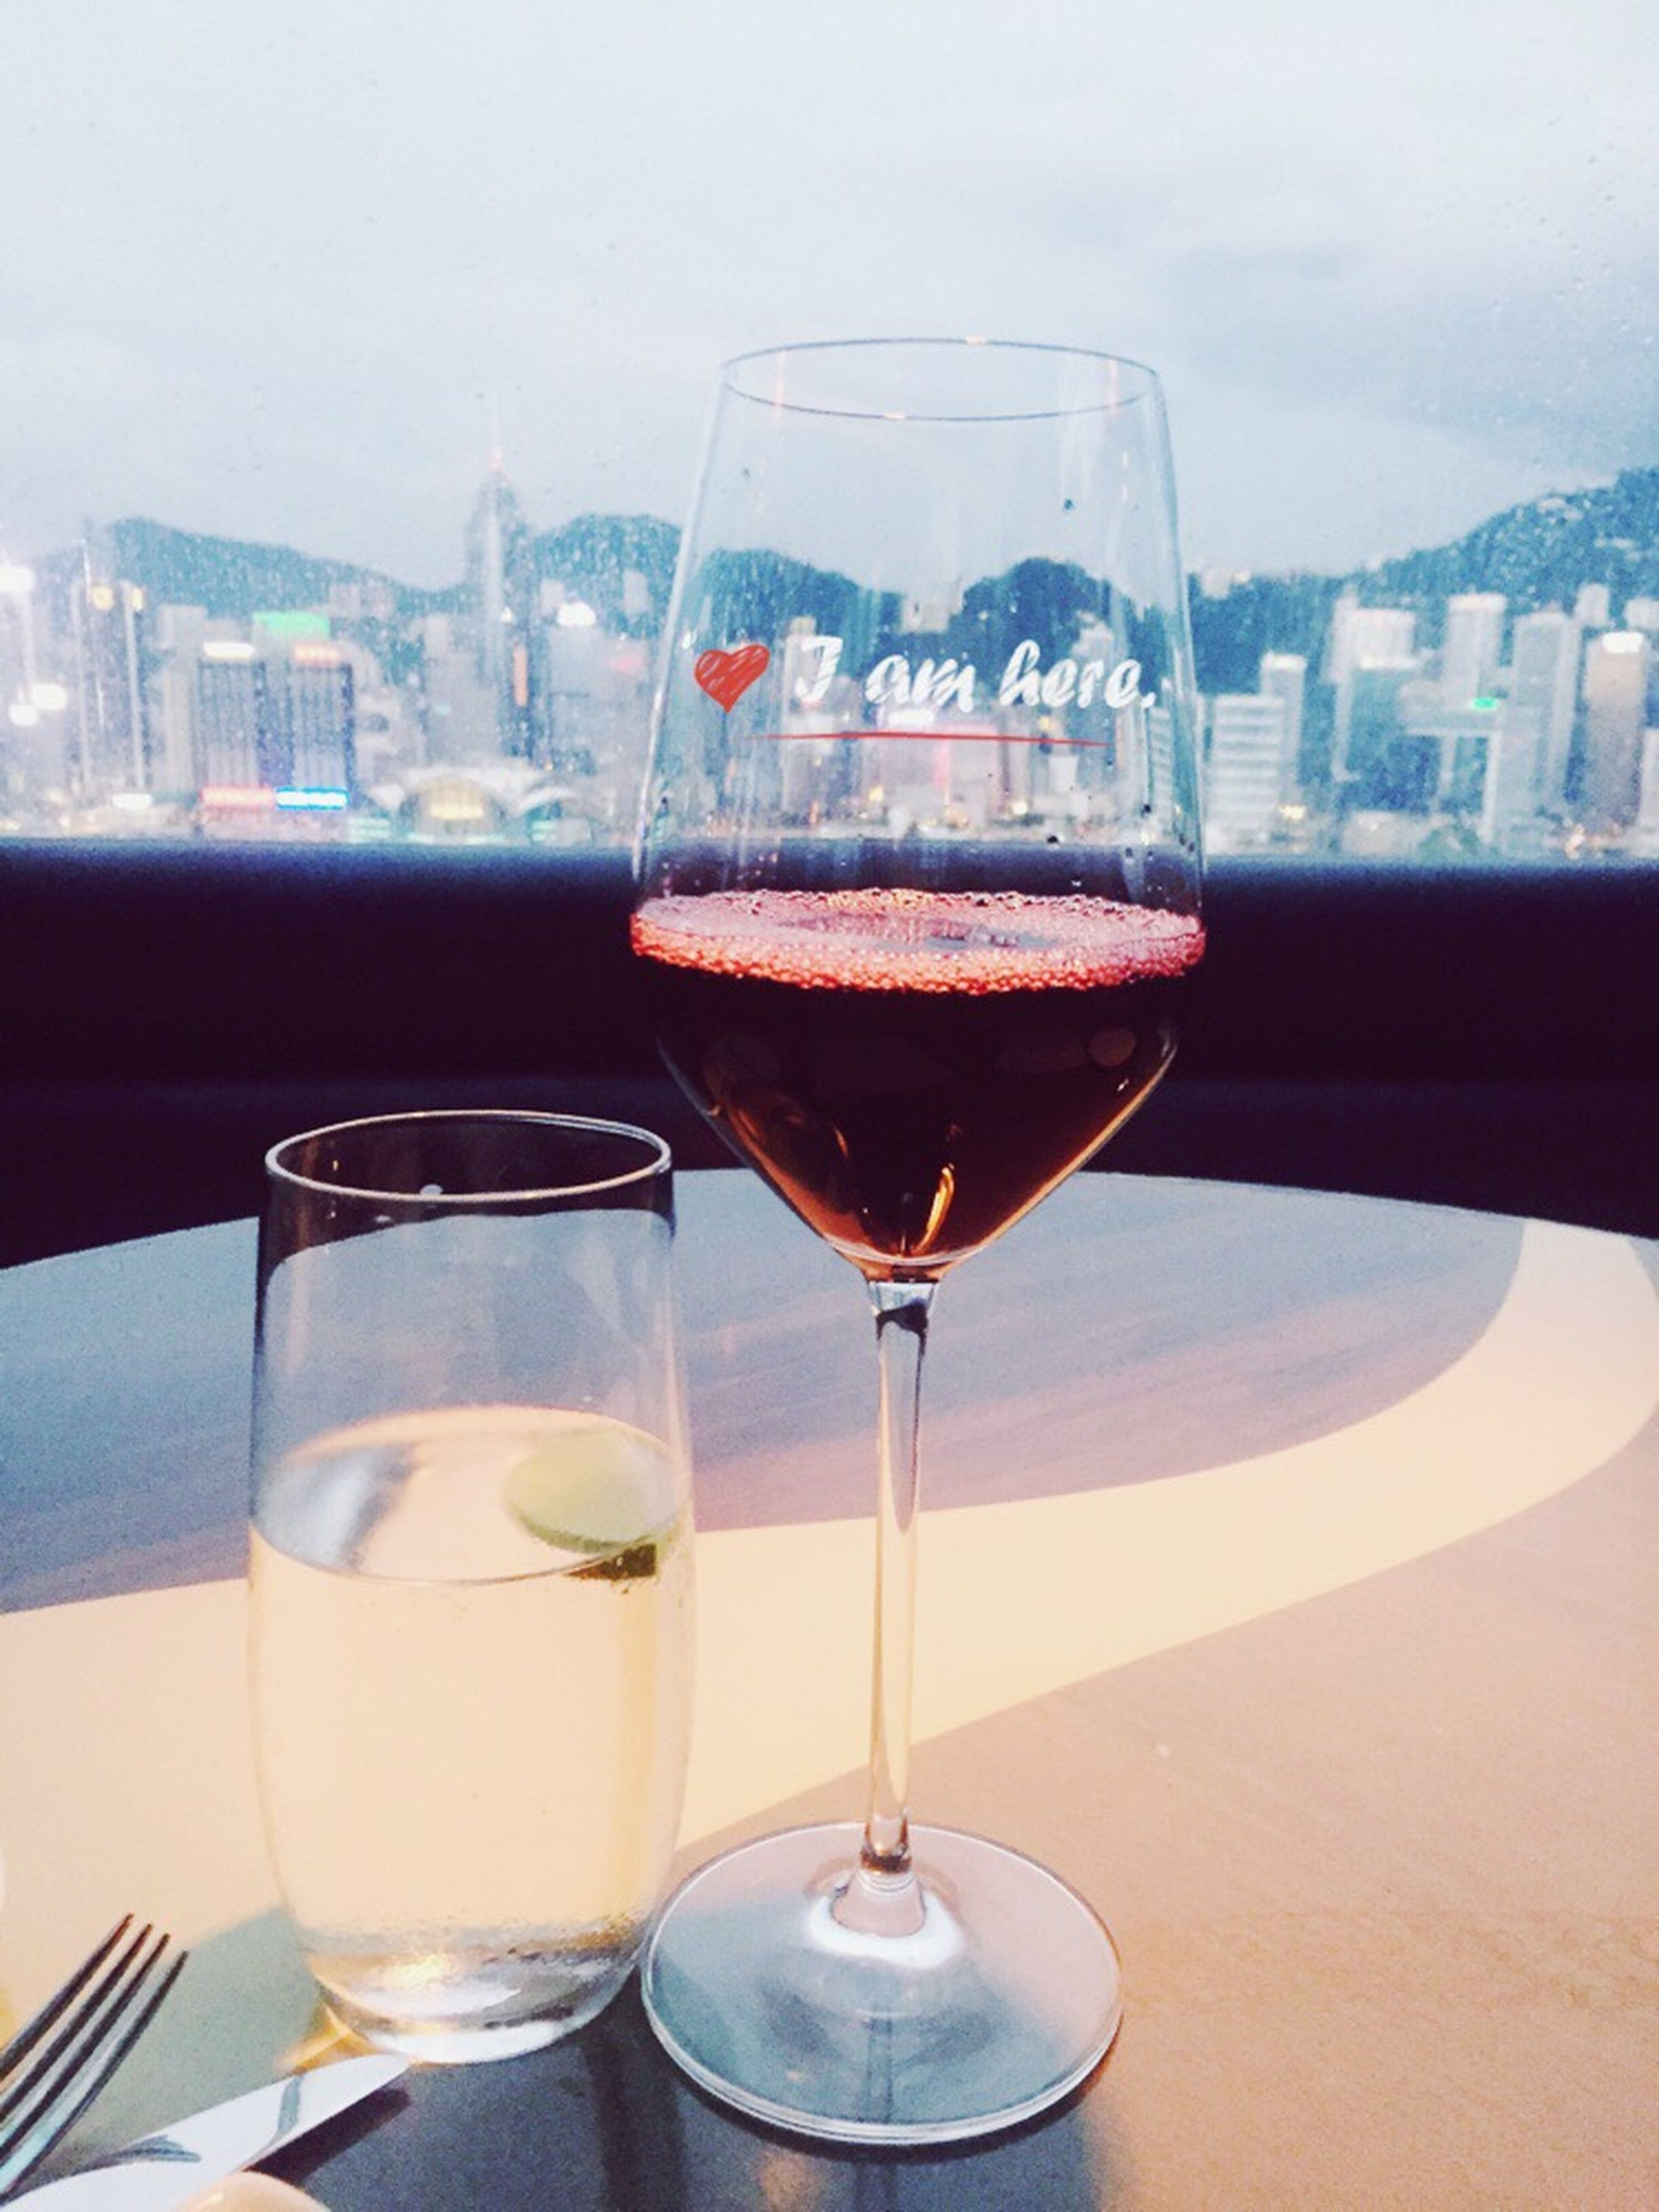 food and drink, drink, refreshment, drinking glass, table, freshness, glass - material, alcohol, transparent, focus on foreground, indoors, close-up, still life, wineglass, drinking straw, restaurant, glass, water, cocktail, wine